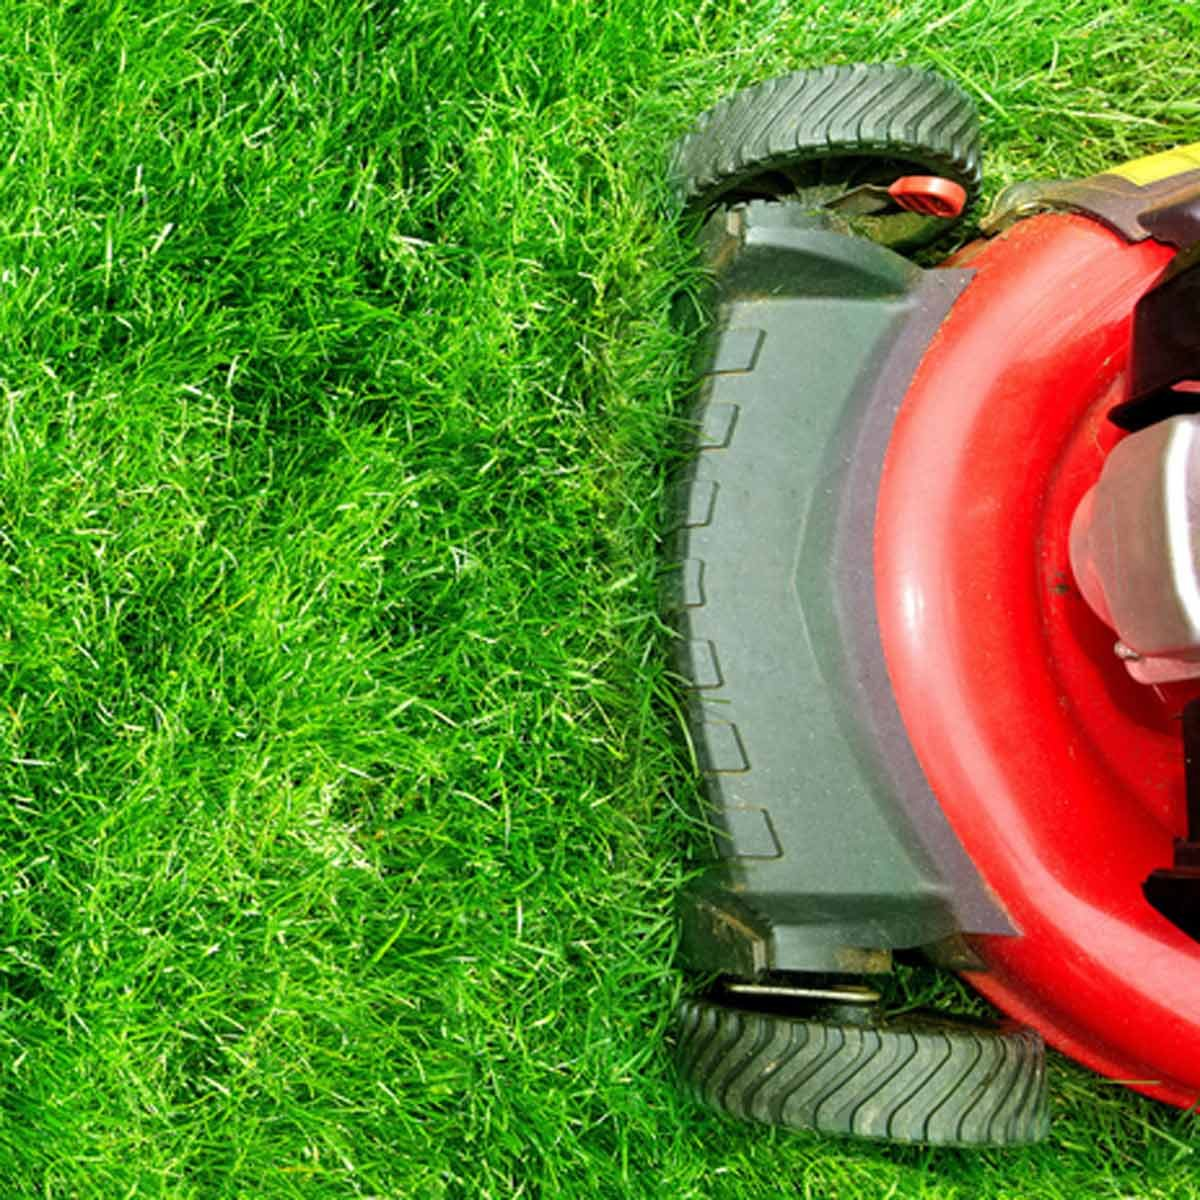 Cut Grass to the Correct Height